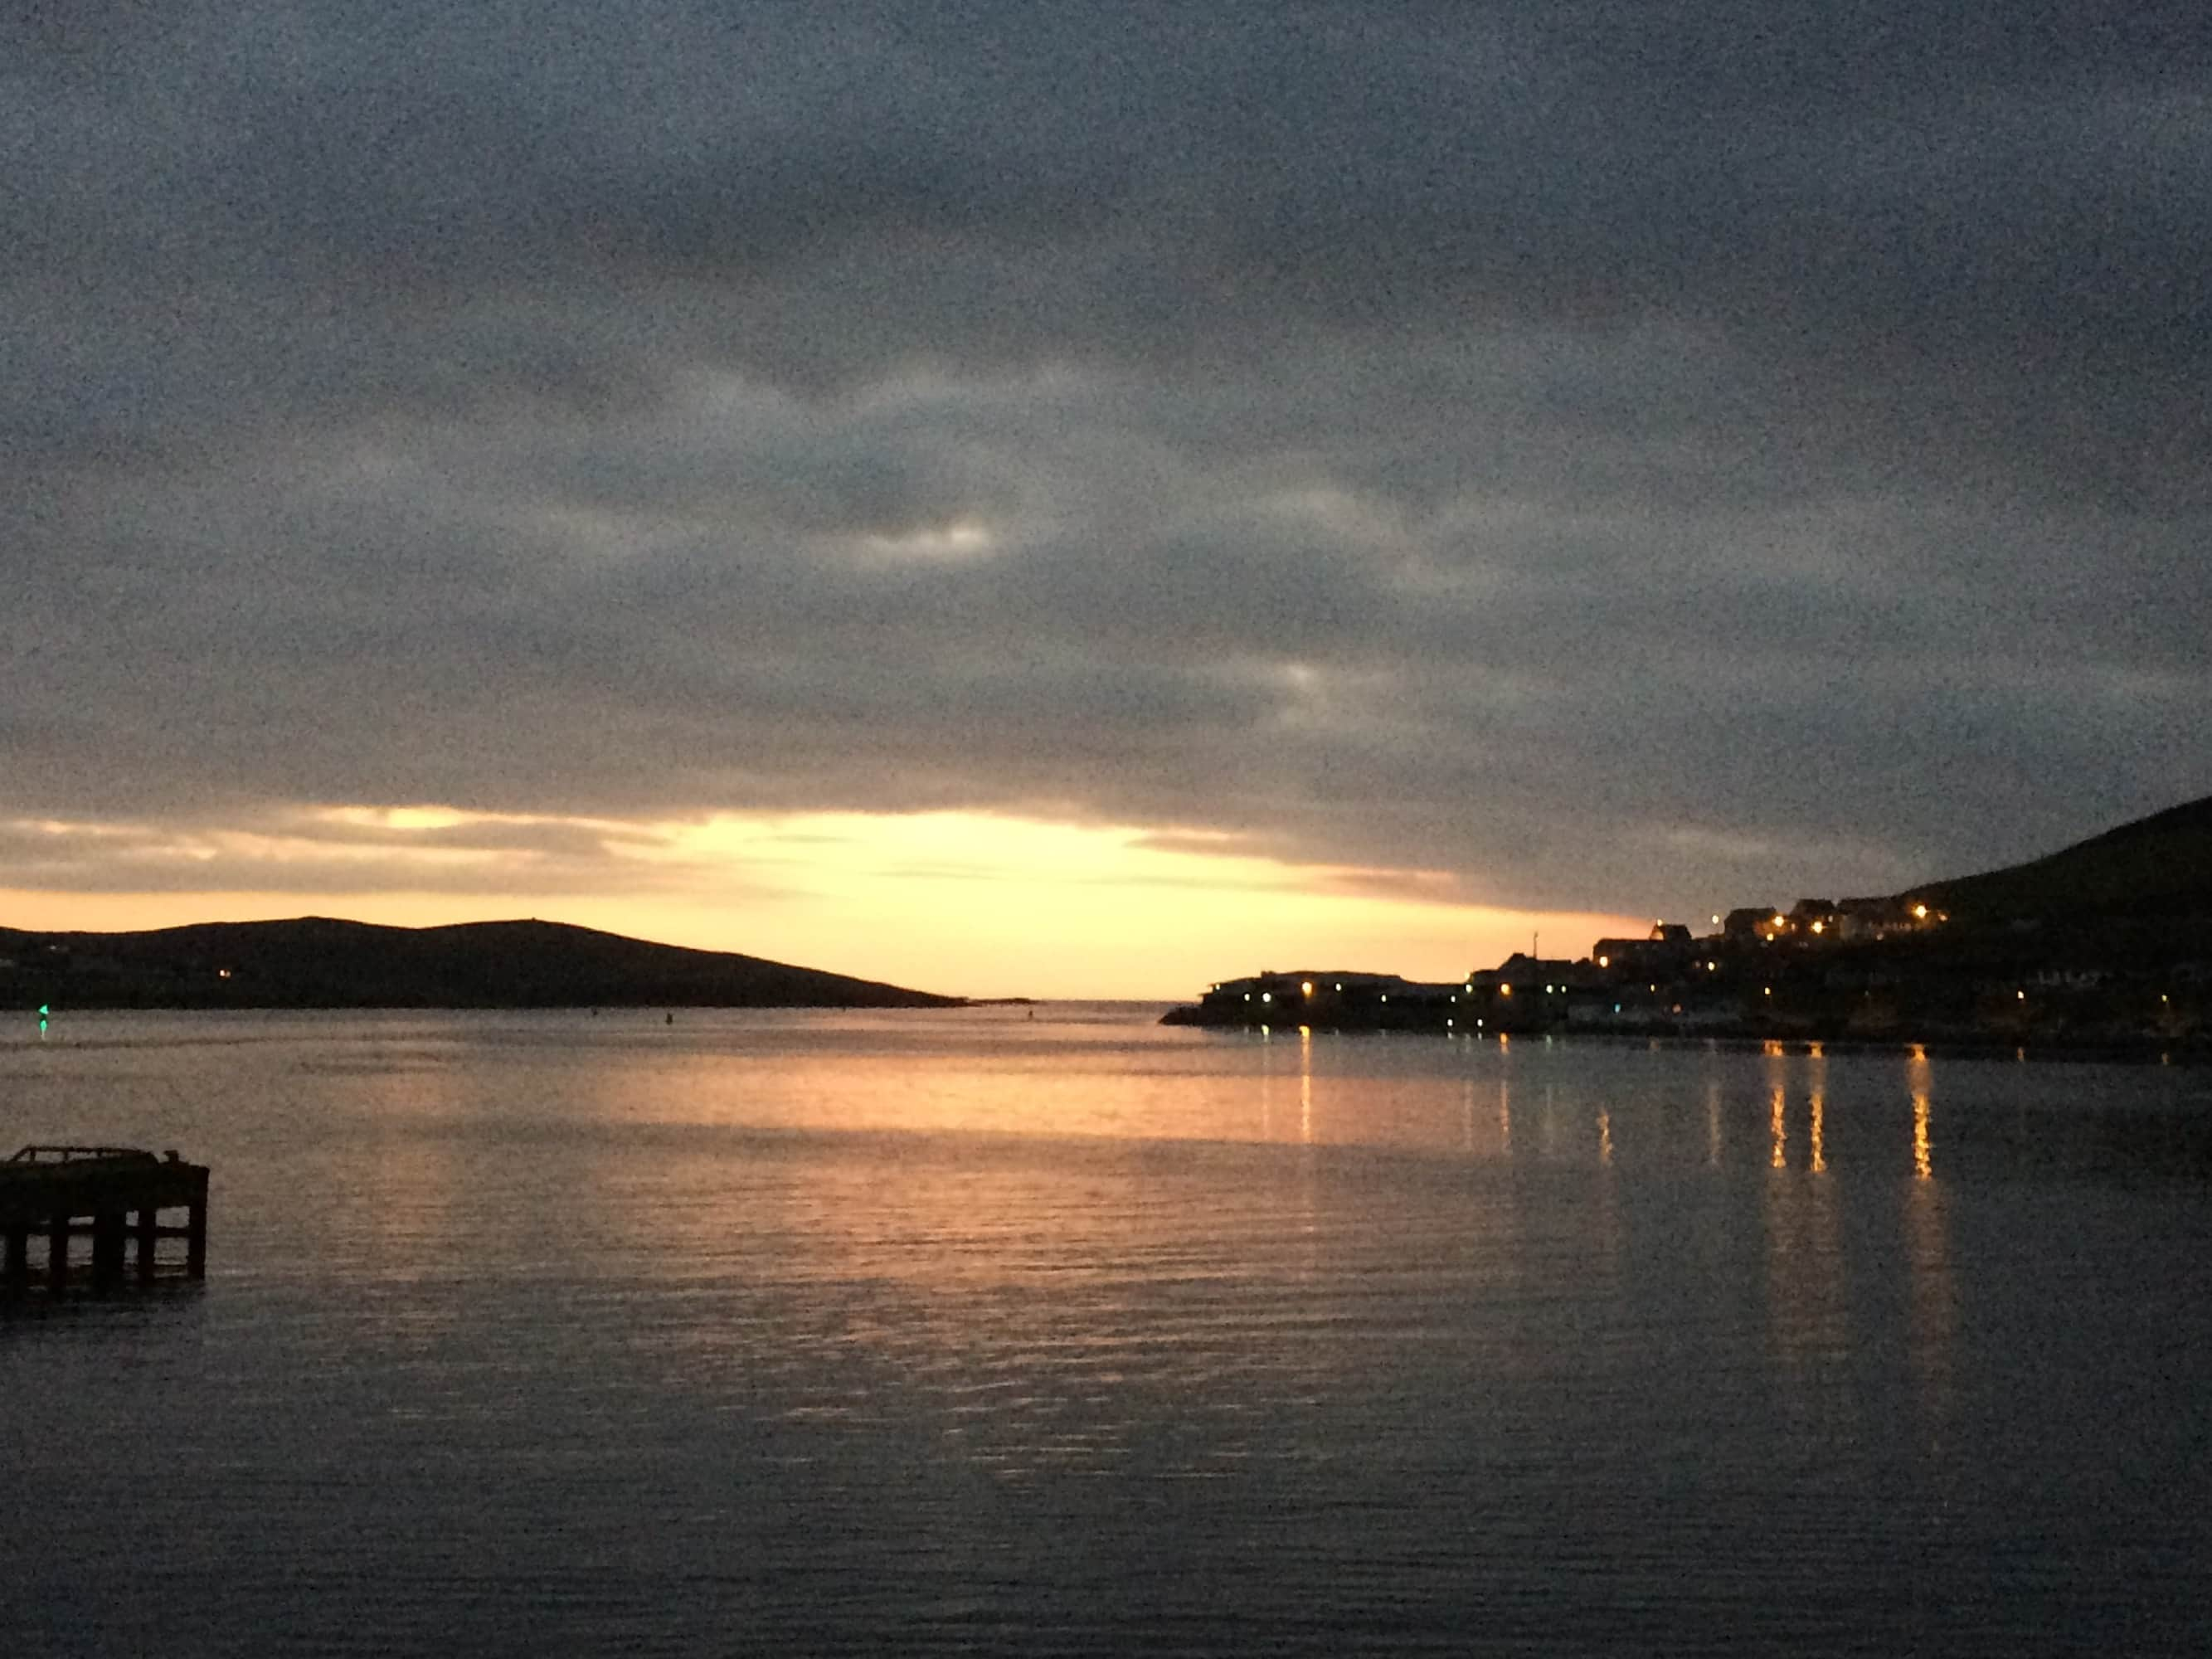 and the sun sets on the last day of Shetland Wool Week 2015. What a special week it was.